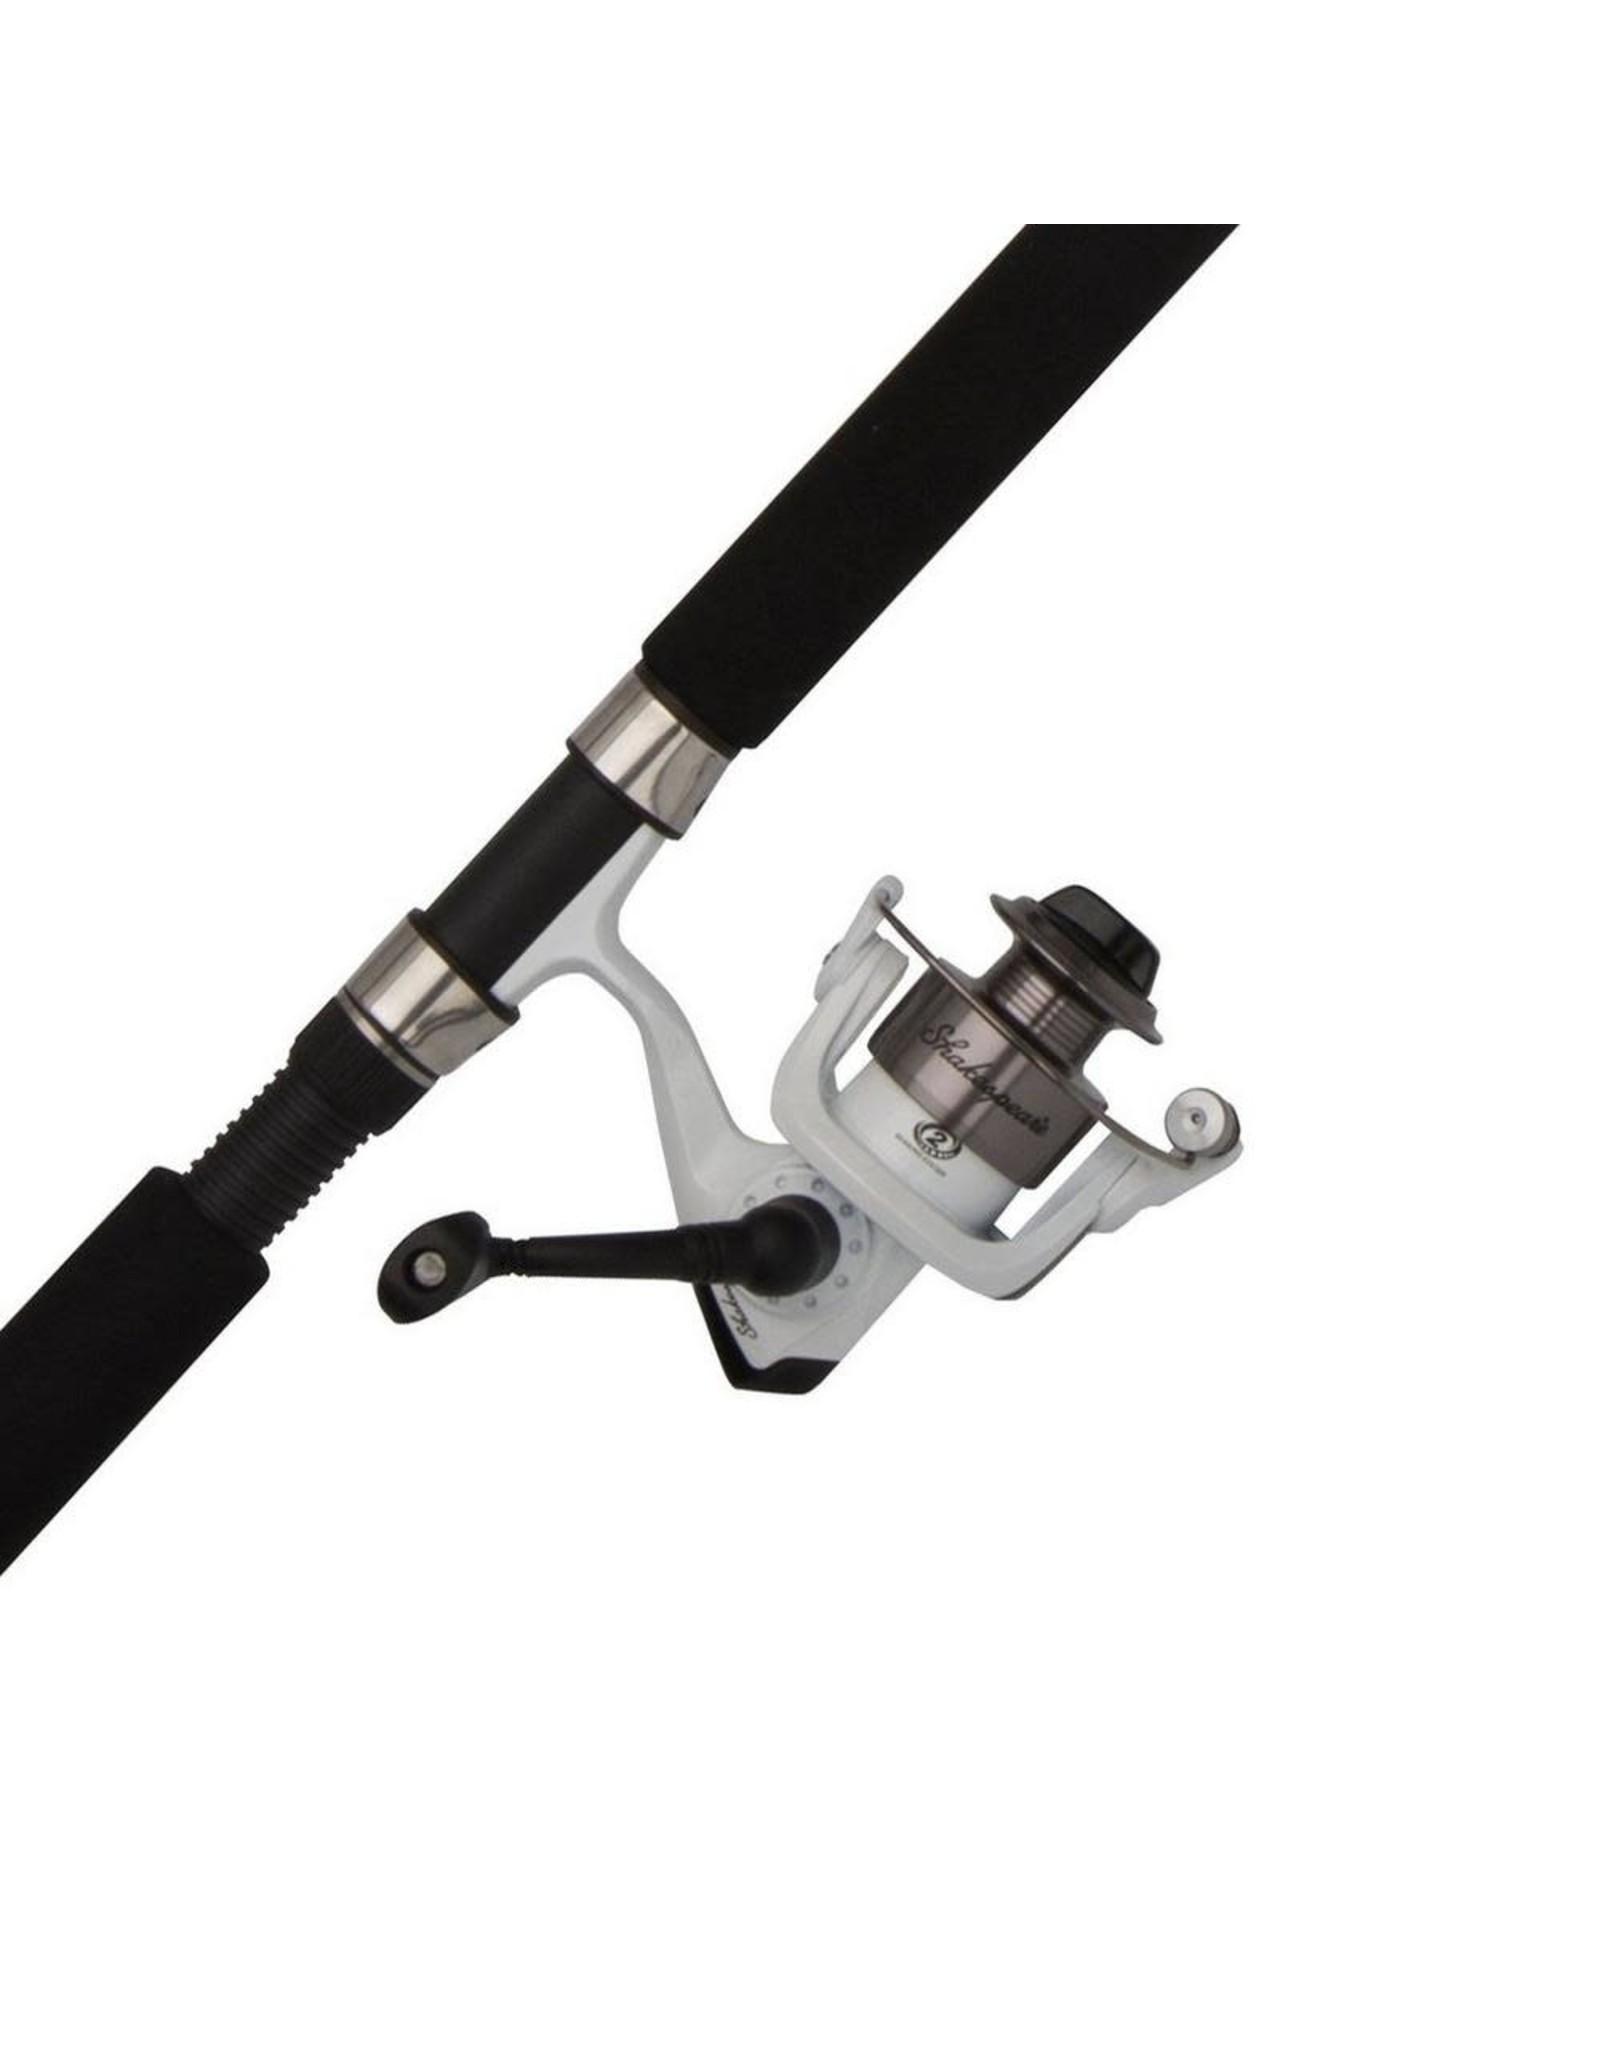 Ugly Stik Ugly Stik Crappie Spinning Combo